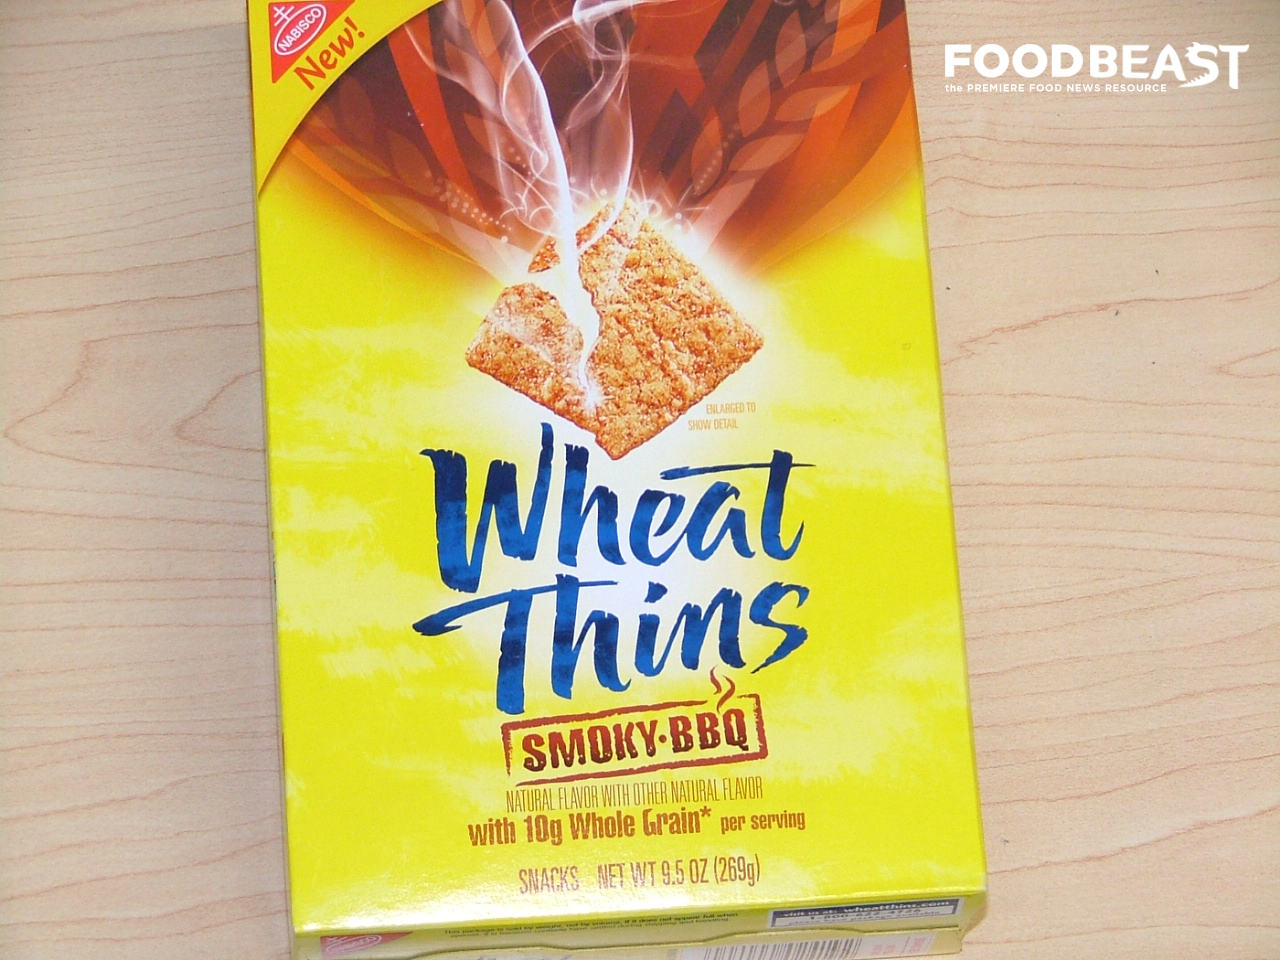 Wheat Thins Launches New 'Smoky BBQ' Flavor | 1280 x 960 jpeg 781kB